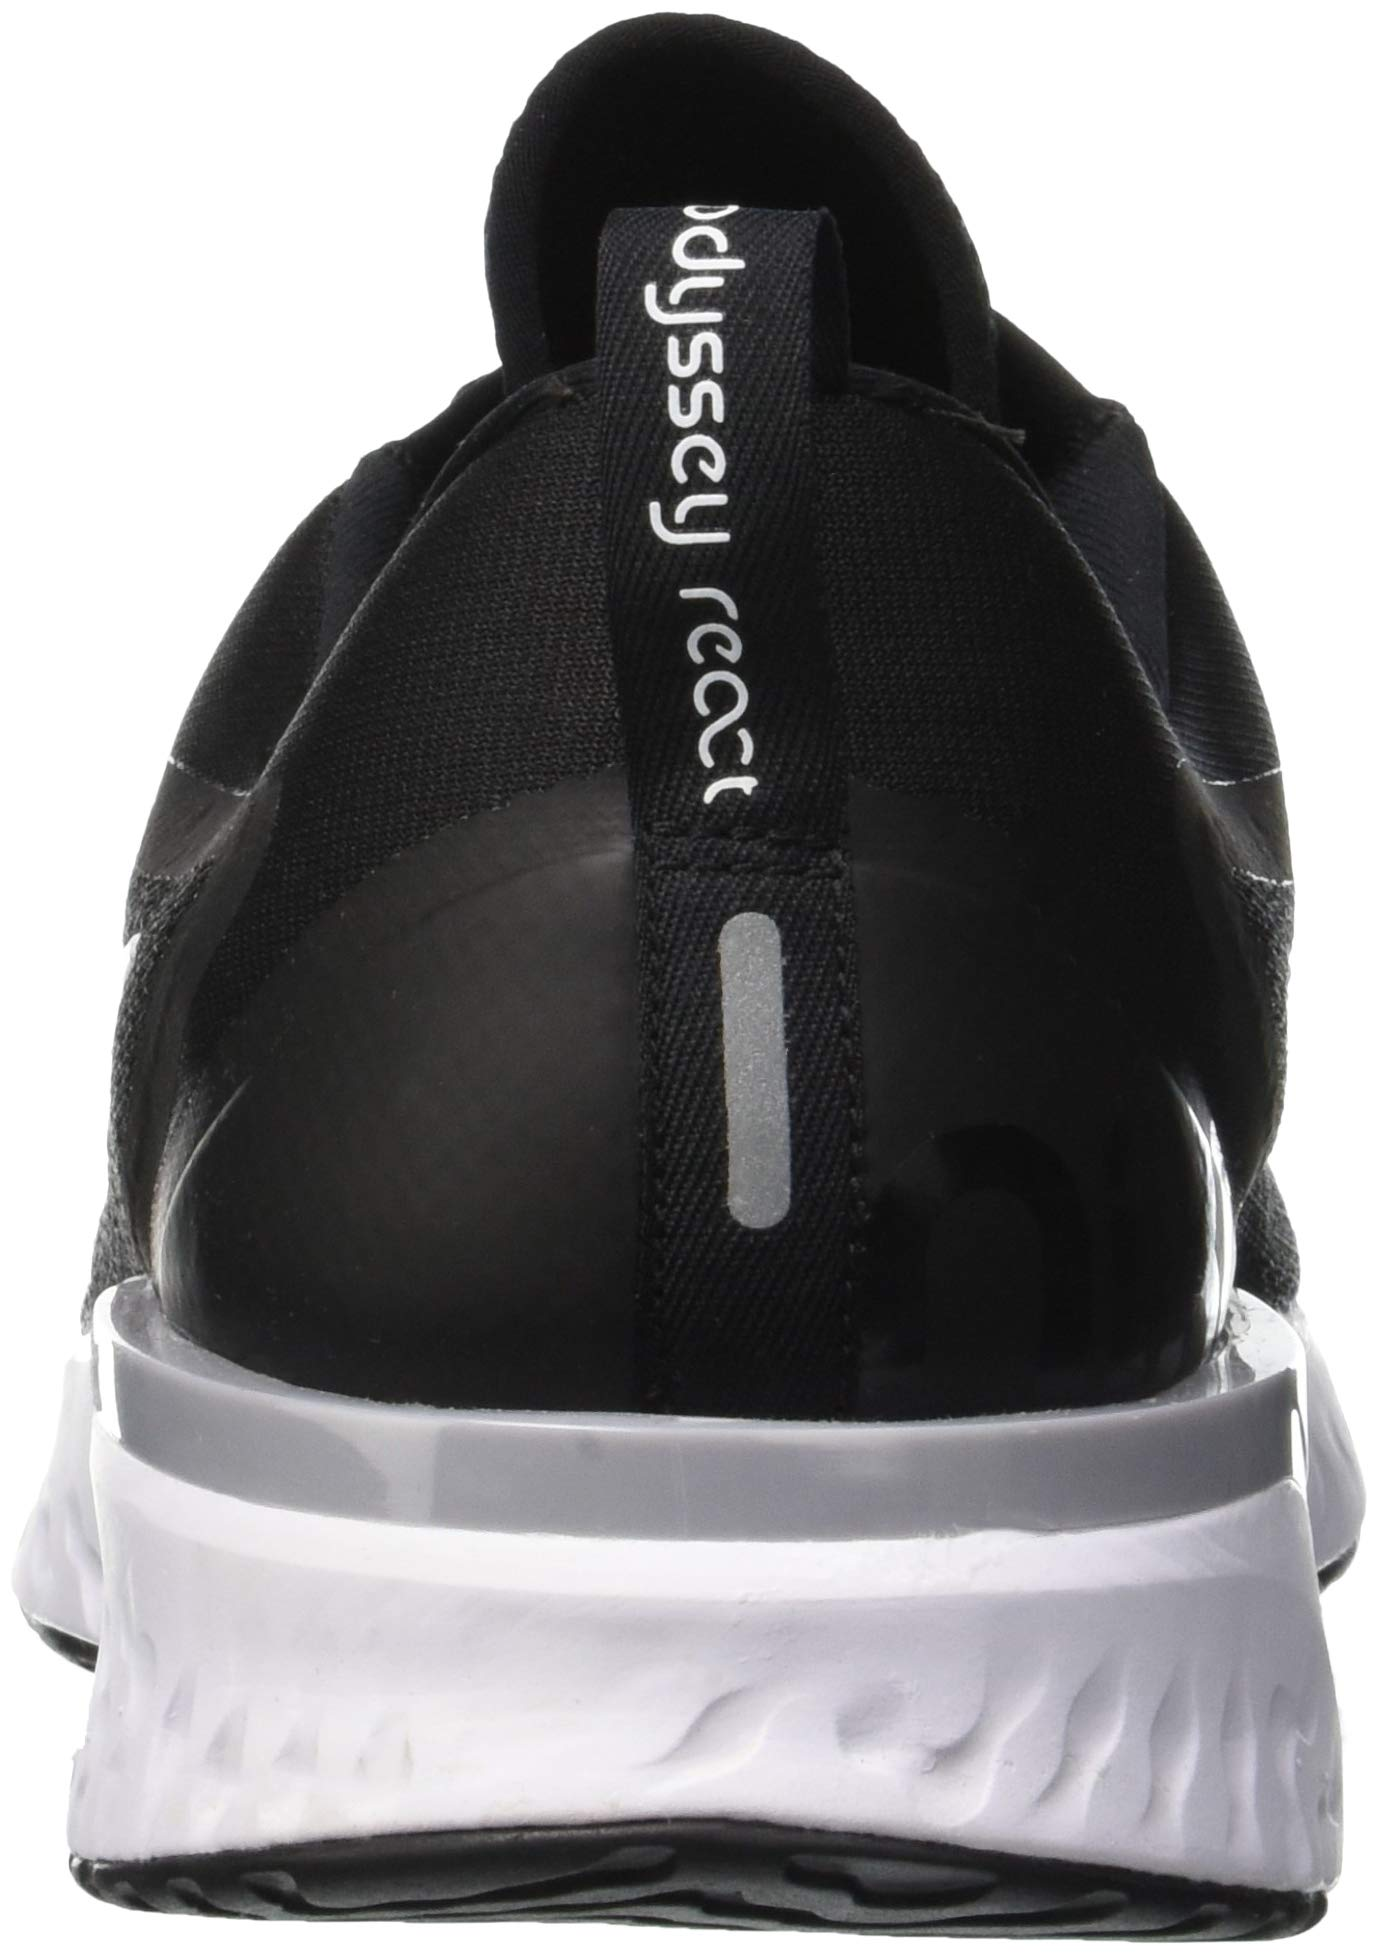 Nike Odyssey React Mens Running Trainers AO9819 Sneakers Shoes (UK 6 US 7 EU 40, Black White Wolf Grey 001) by Nike (Image #2)